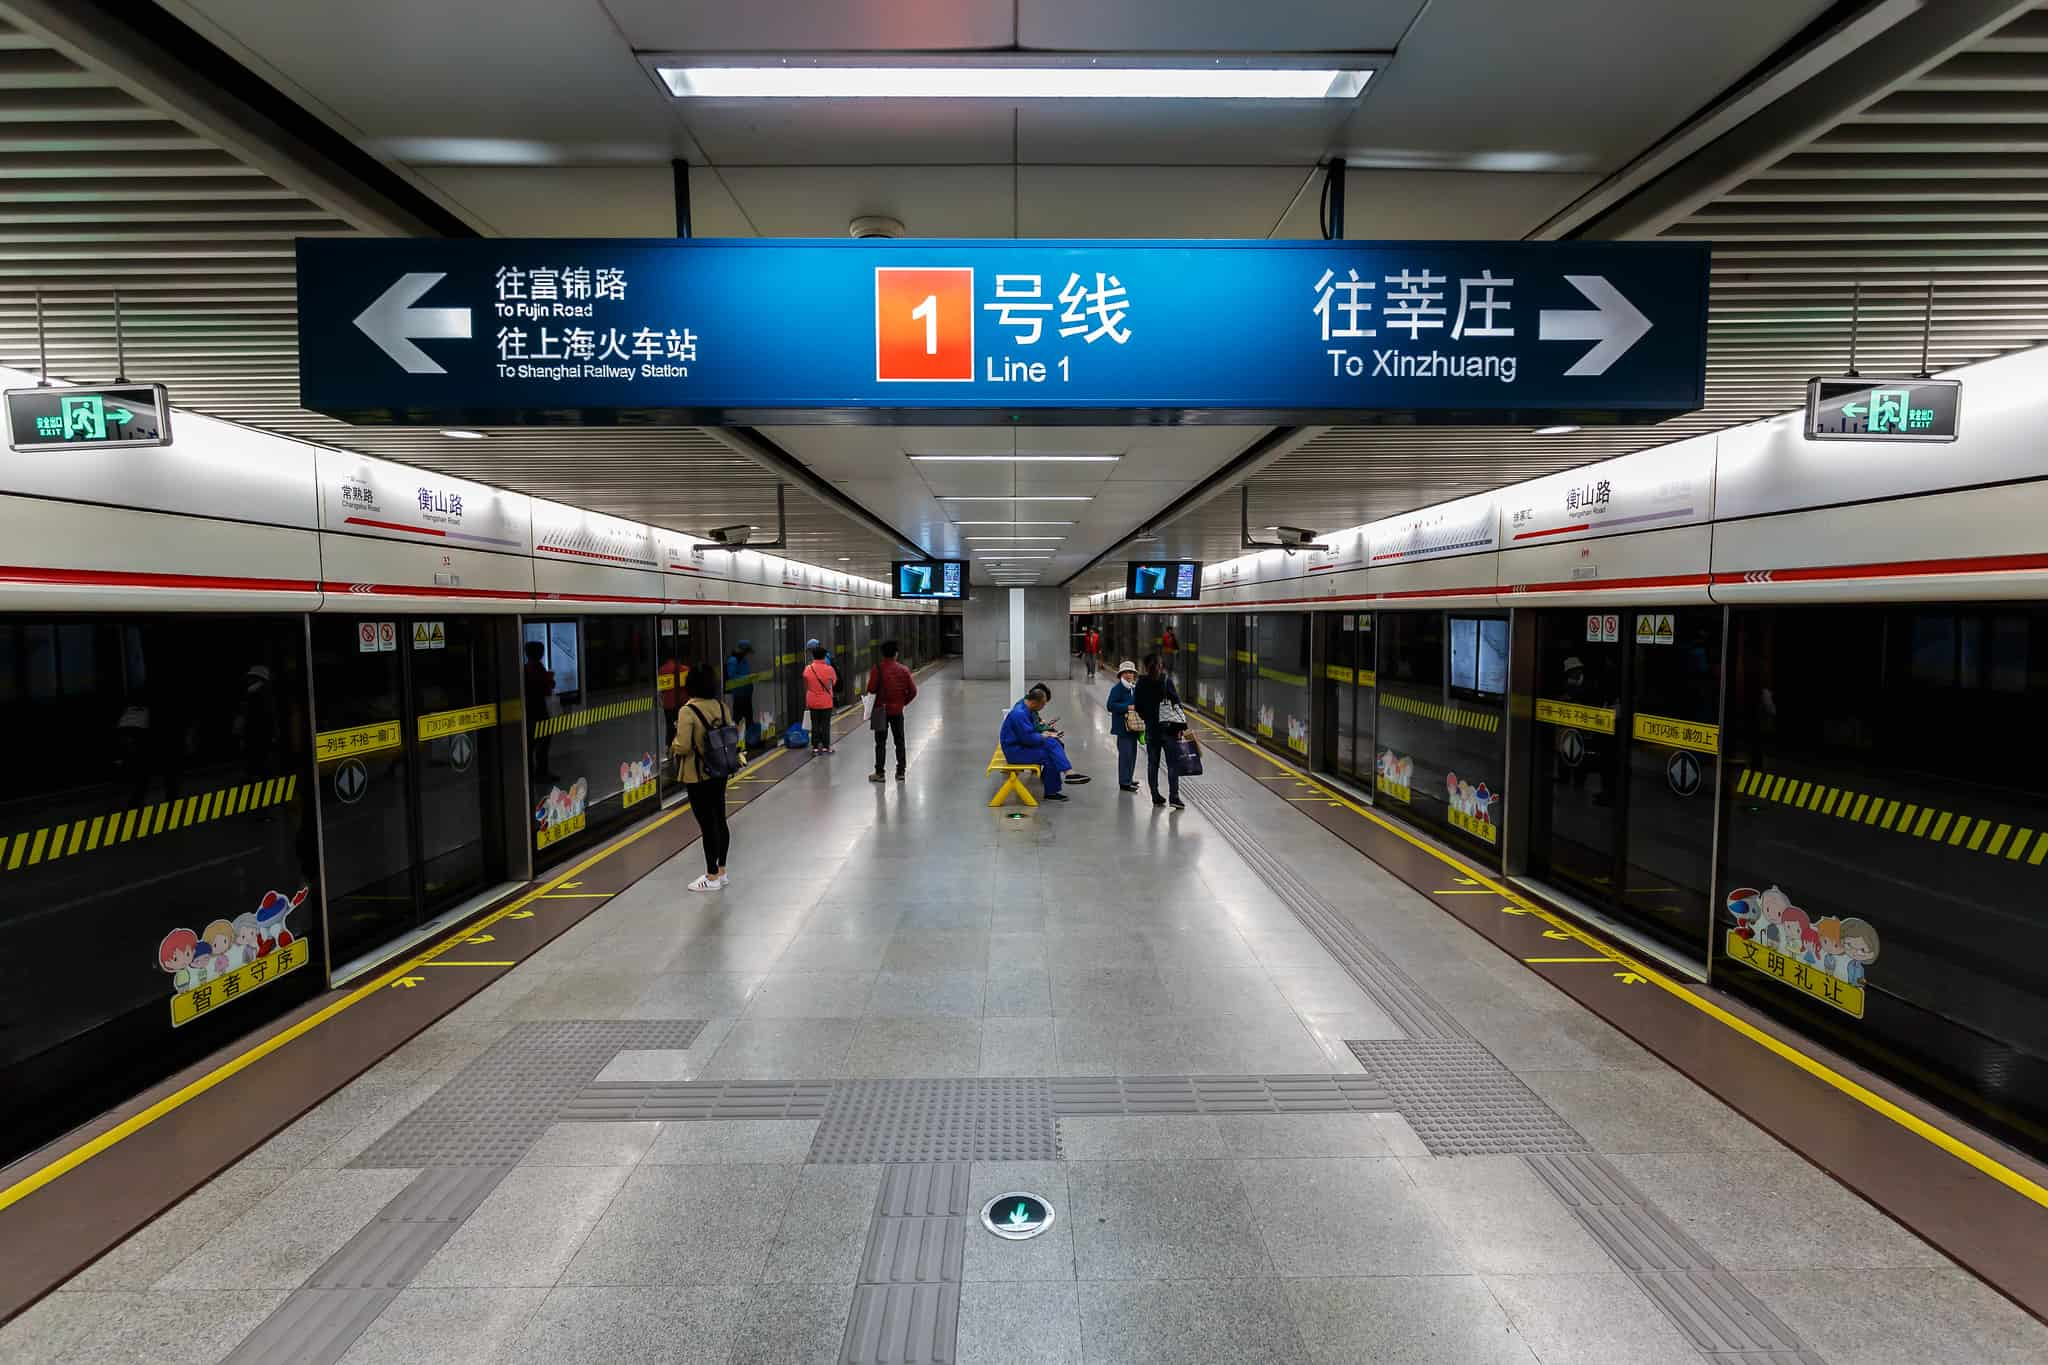 Shanghai metro, Shanghai facts